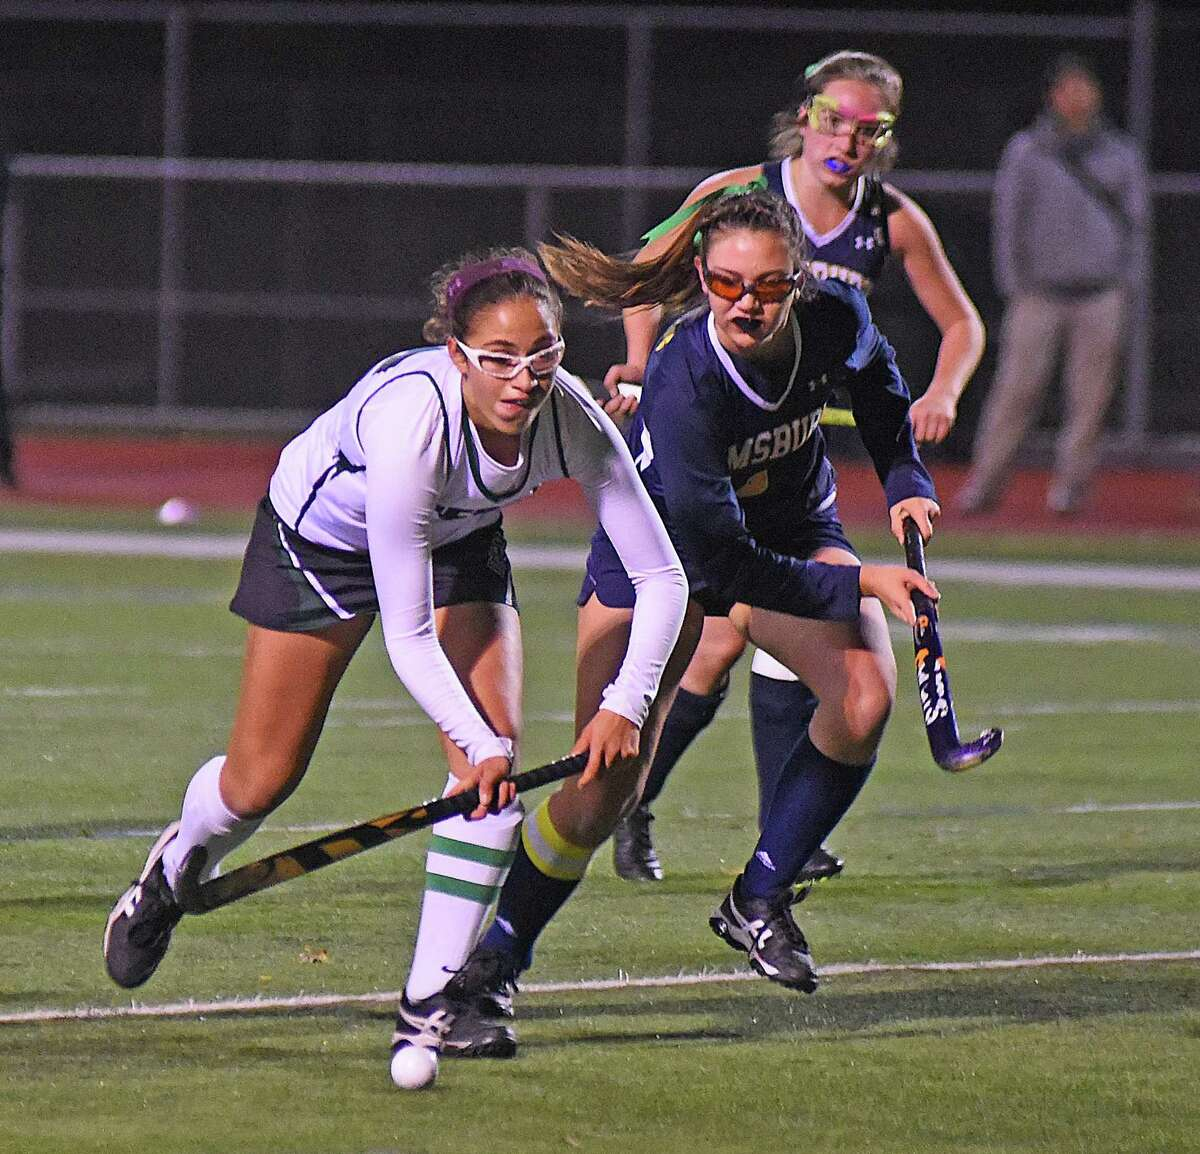 Norwalk's Jacqueline Mirabile, left, pushes the ball up the field ahead of Simsbury defender Devon Murphy.